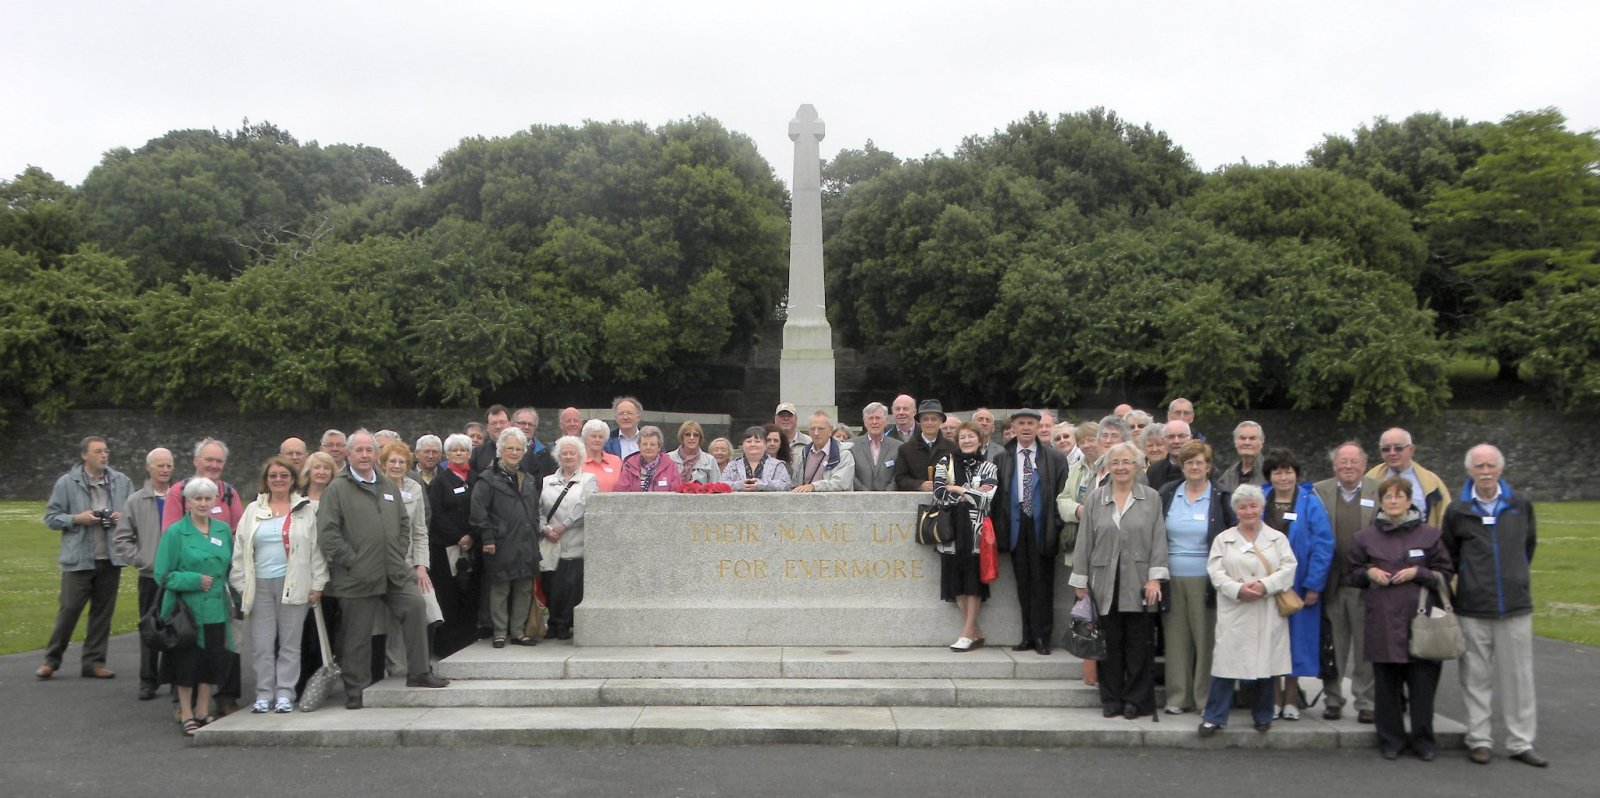 Group at War Stone with Great Cross in background